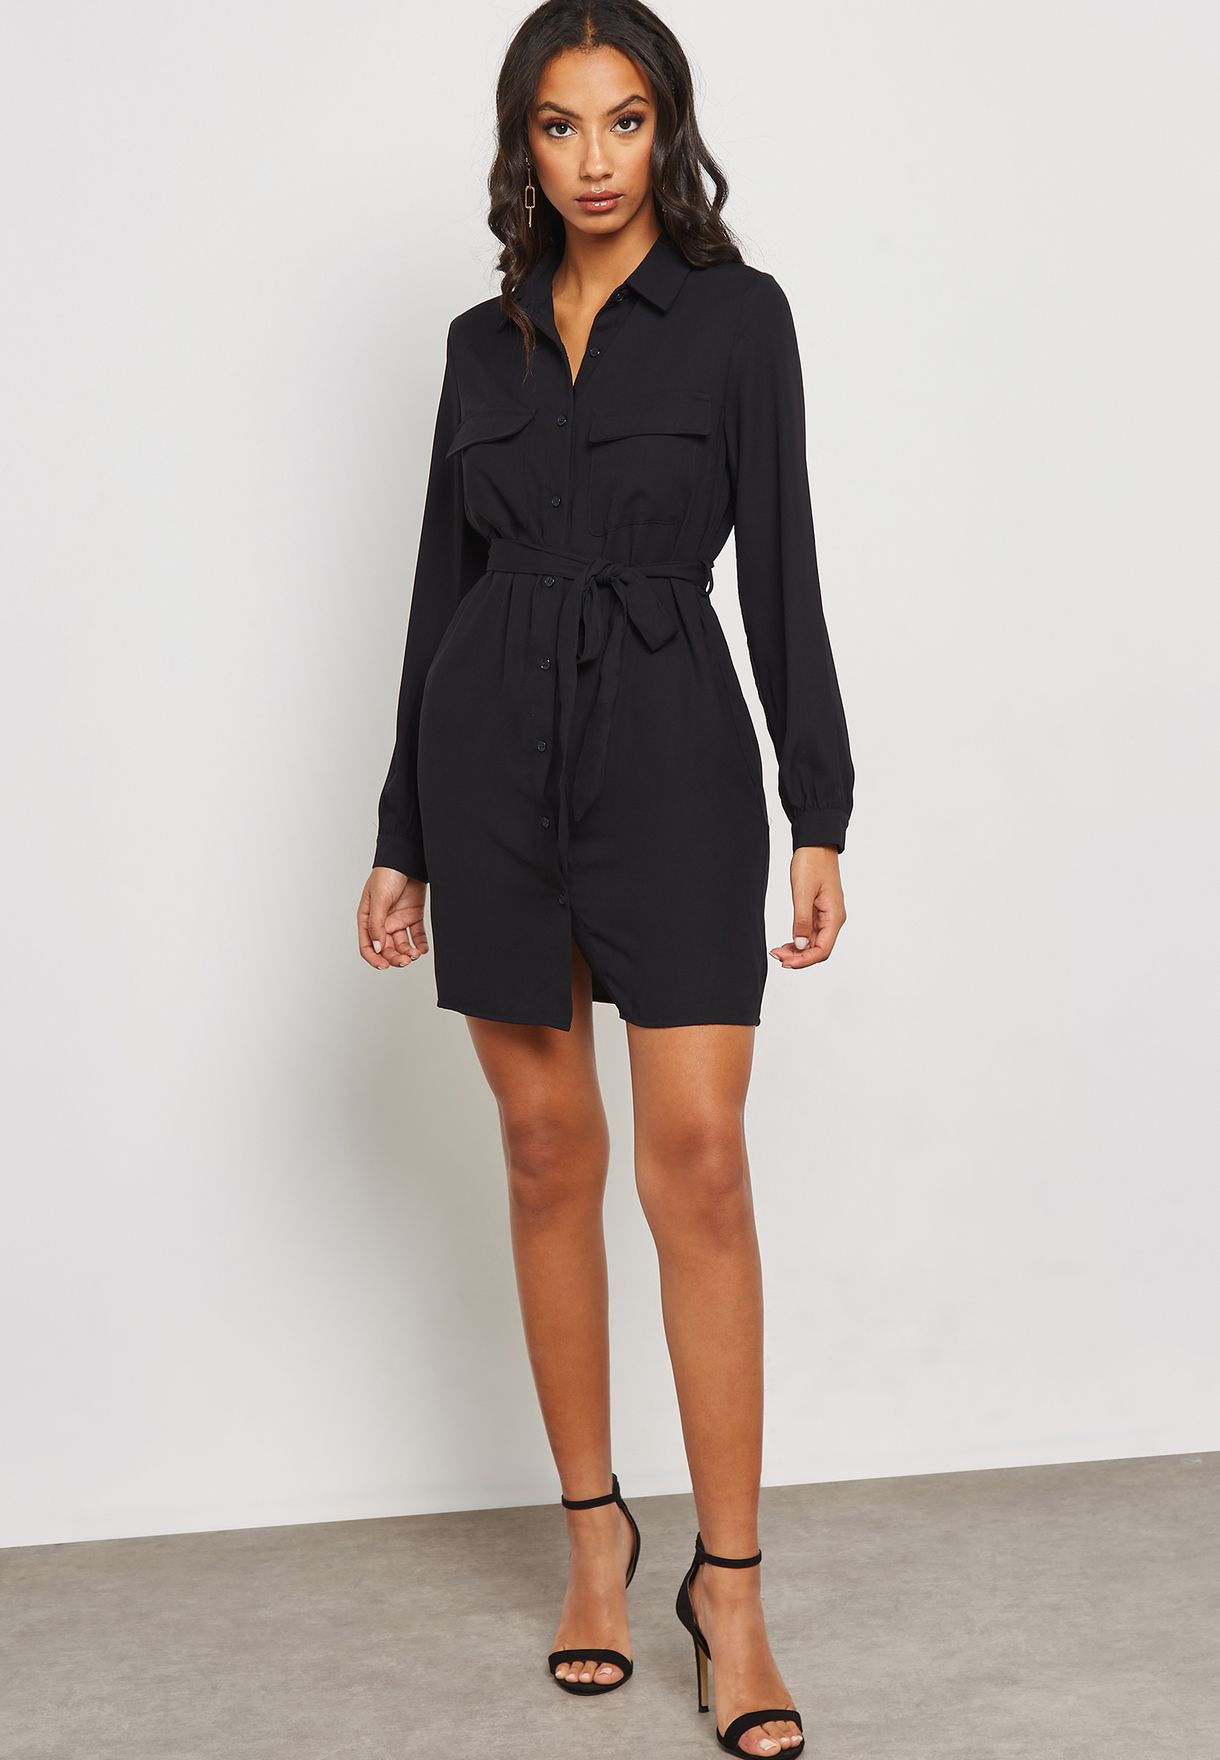 c743500a841 Shop Forever 21 black Long Sleeve Shirt Dress 301081 for Women in ...